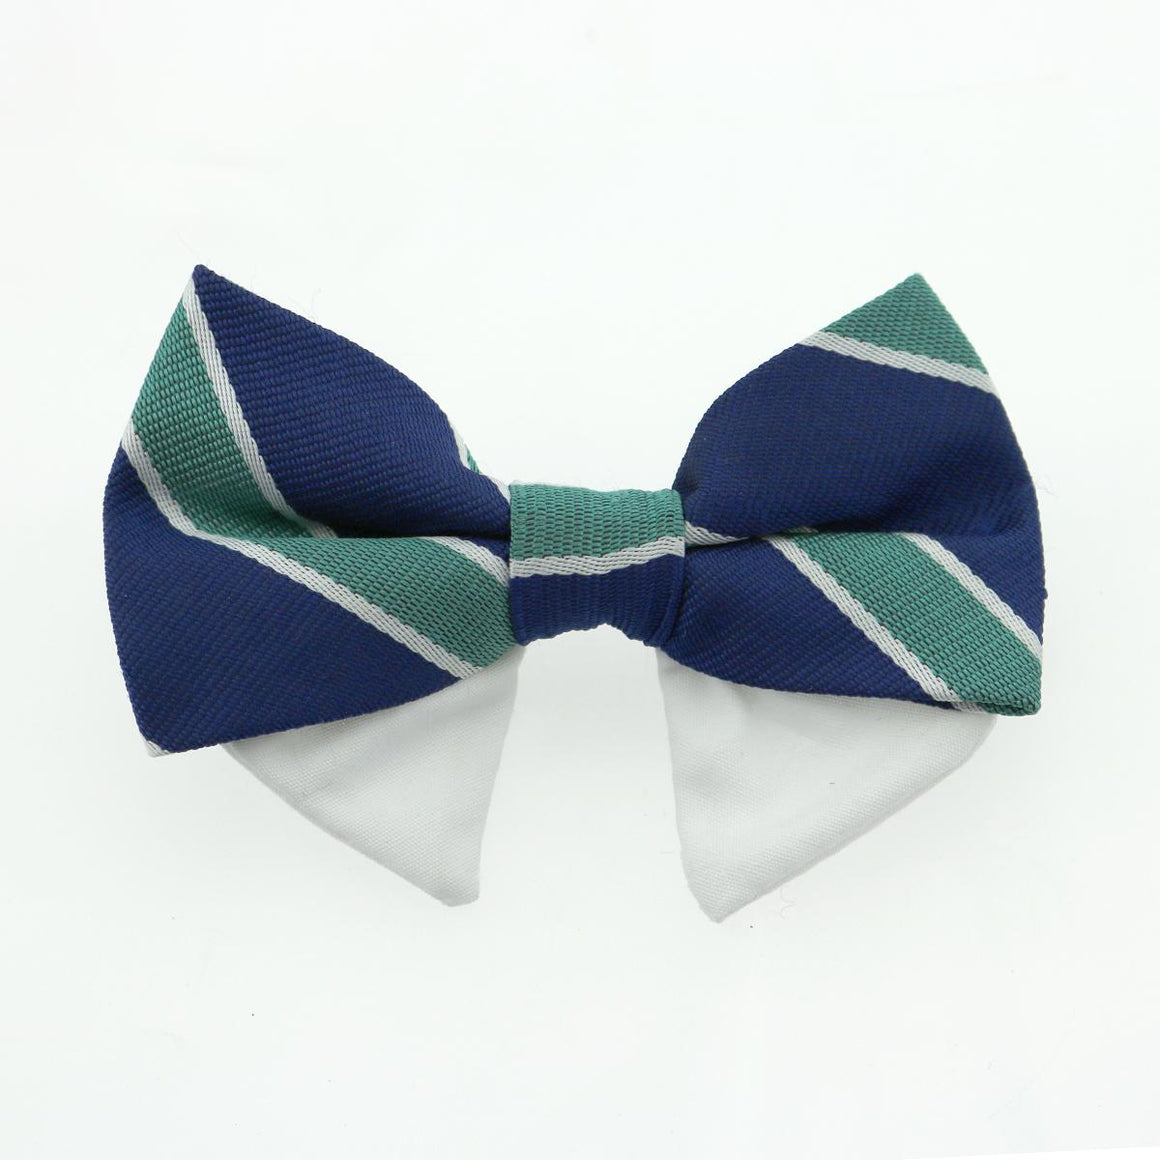 Doggie Design Universal Dog Bow Tie - Navy Blue and Teal Stripe-Le Pup Pet Supplies and Grooming